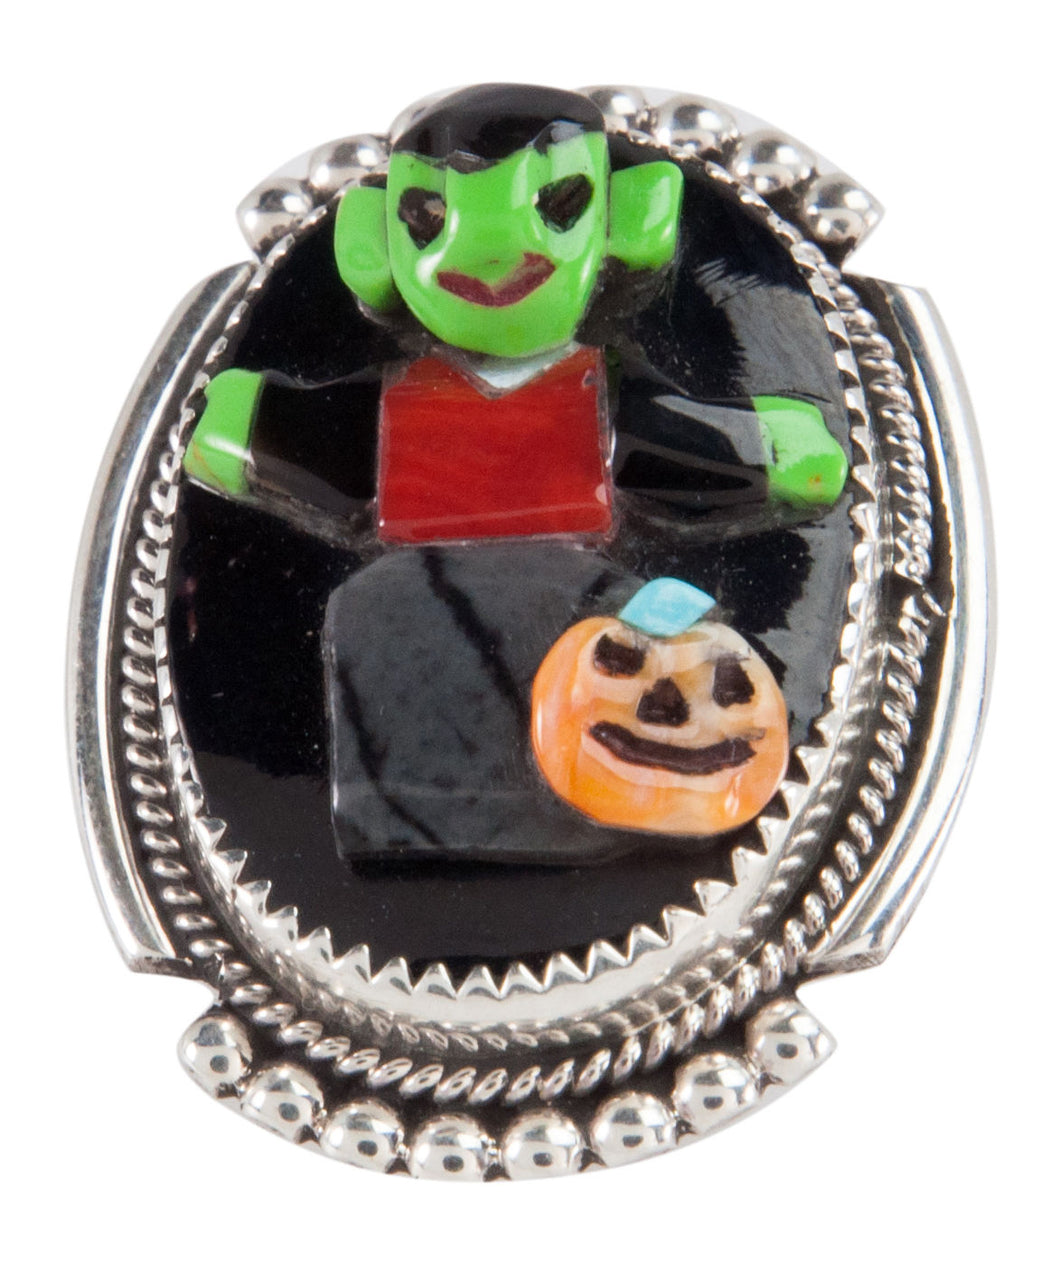 Zuni Native American Halloween Pin Pendant by Bev Etsate SKU228732